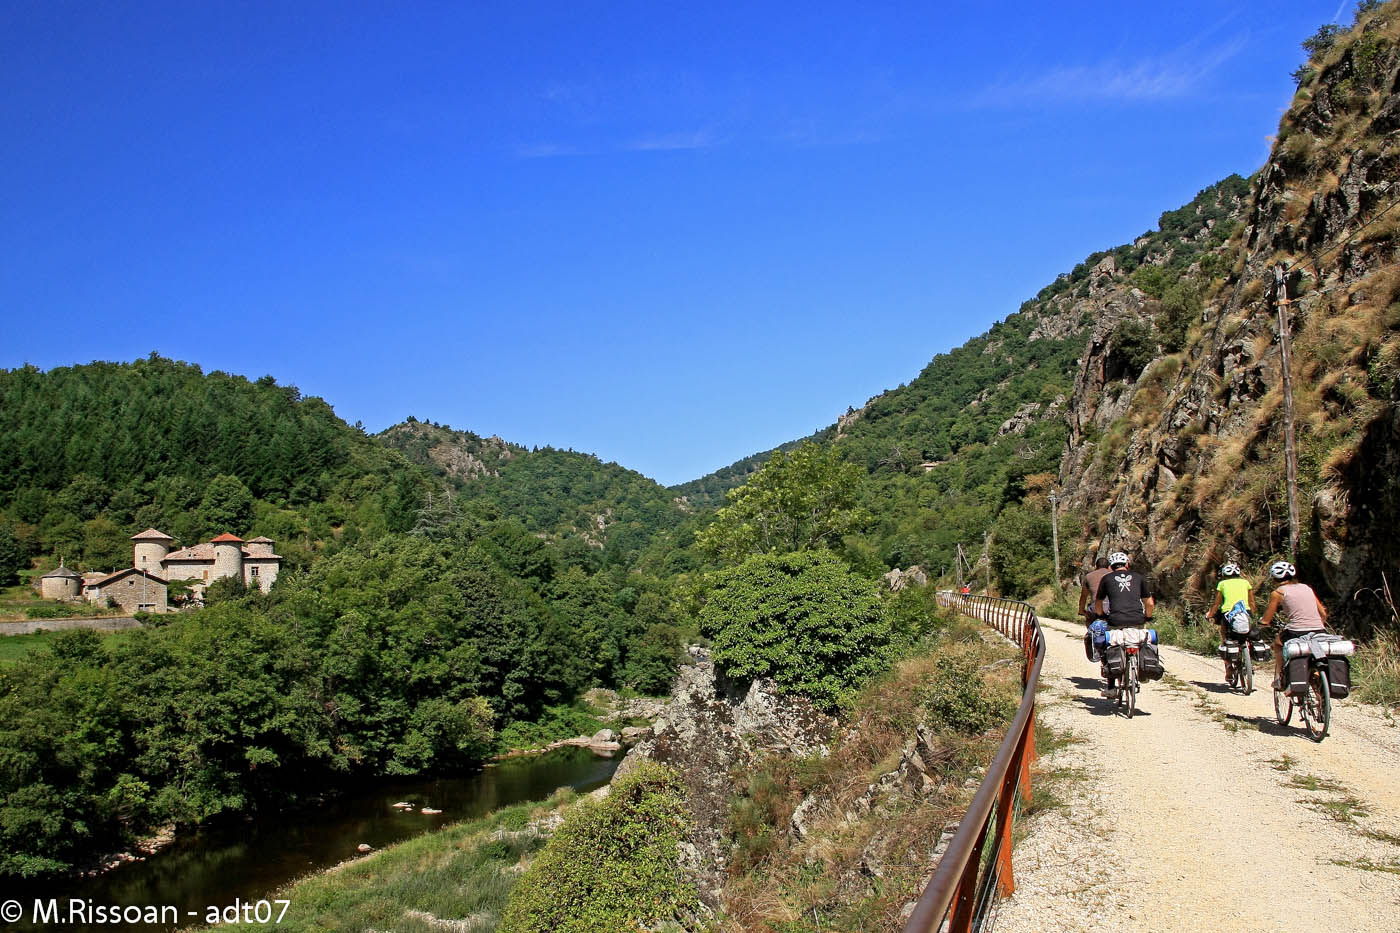 Take a bike ride along the foot and cycle paths : La Dolce Via